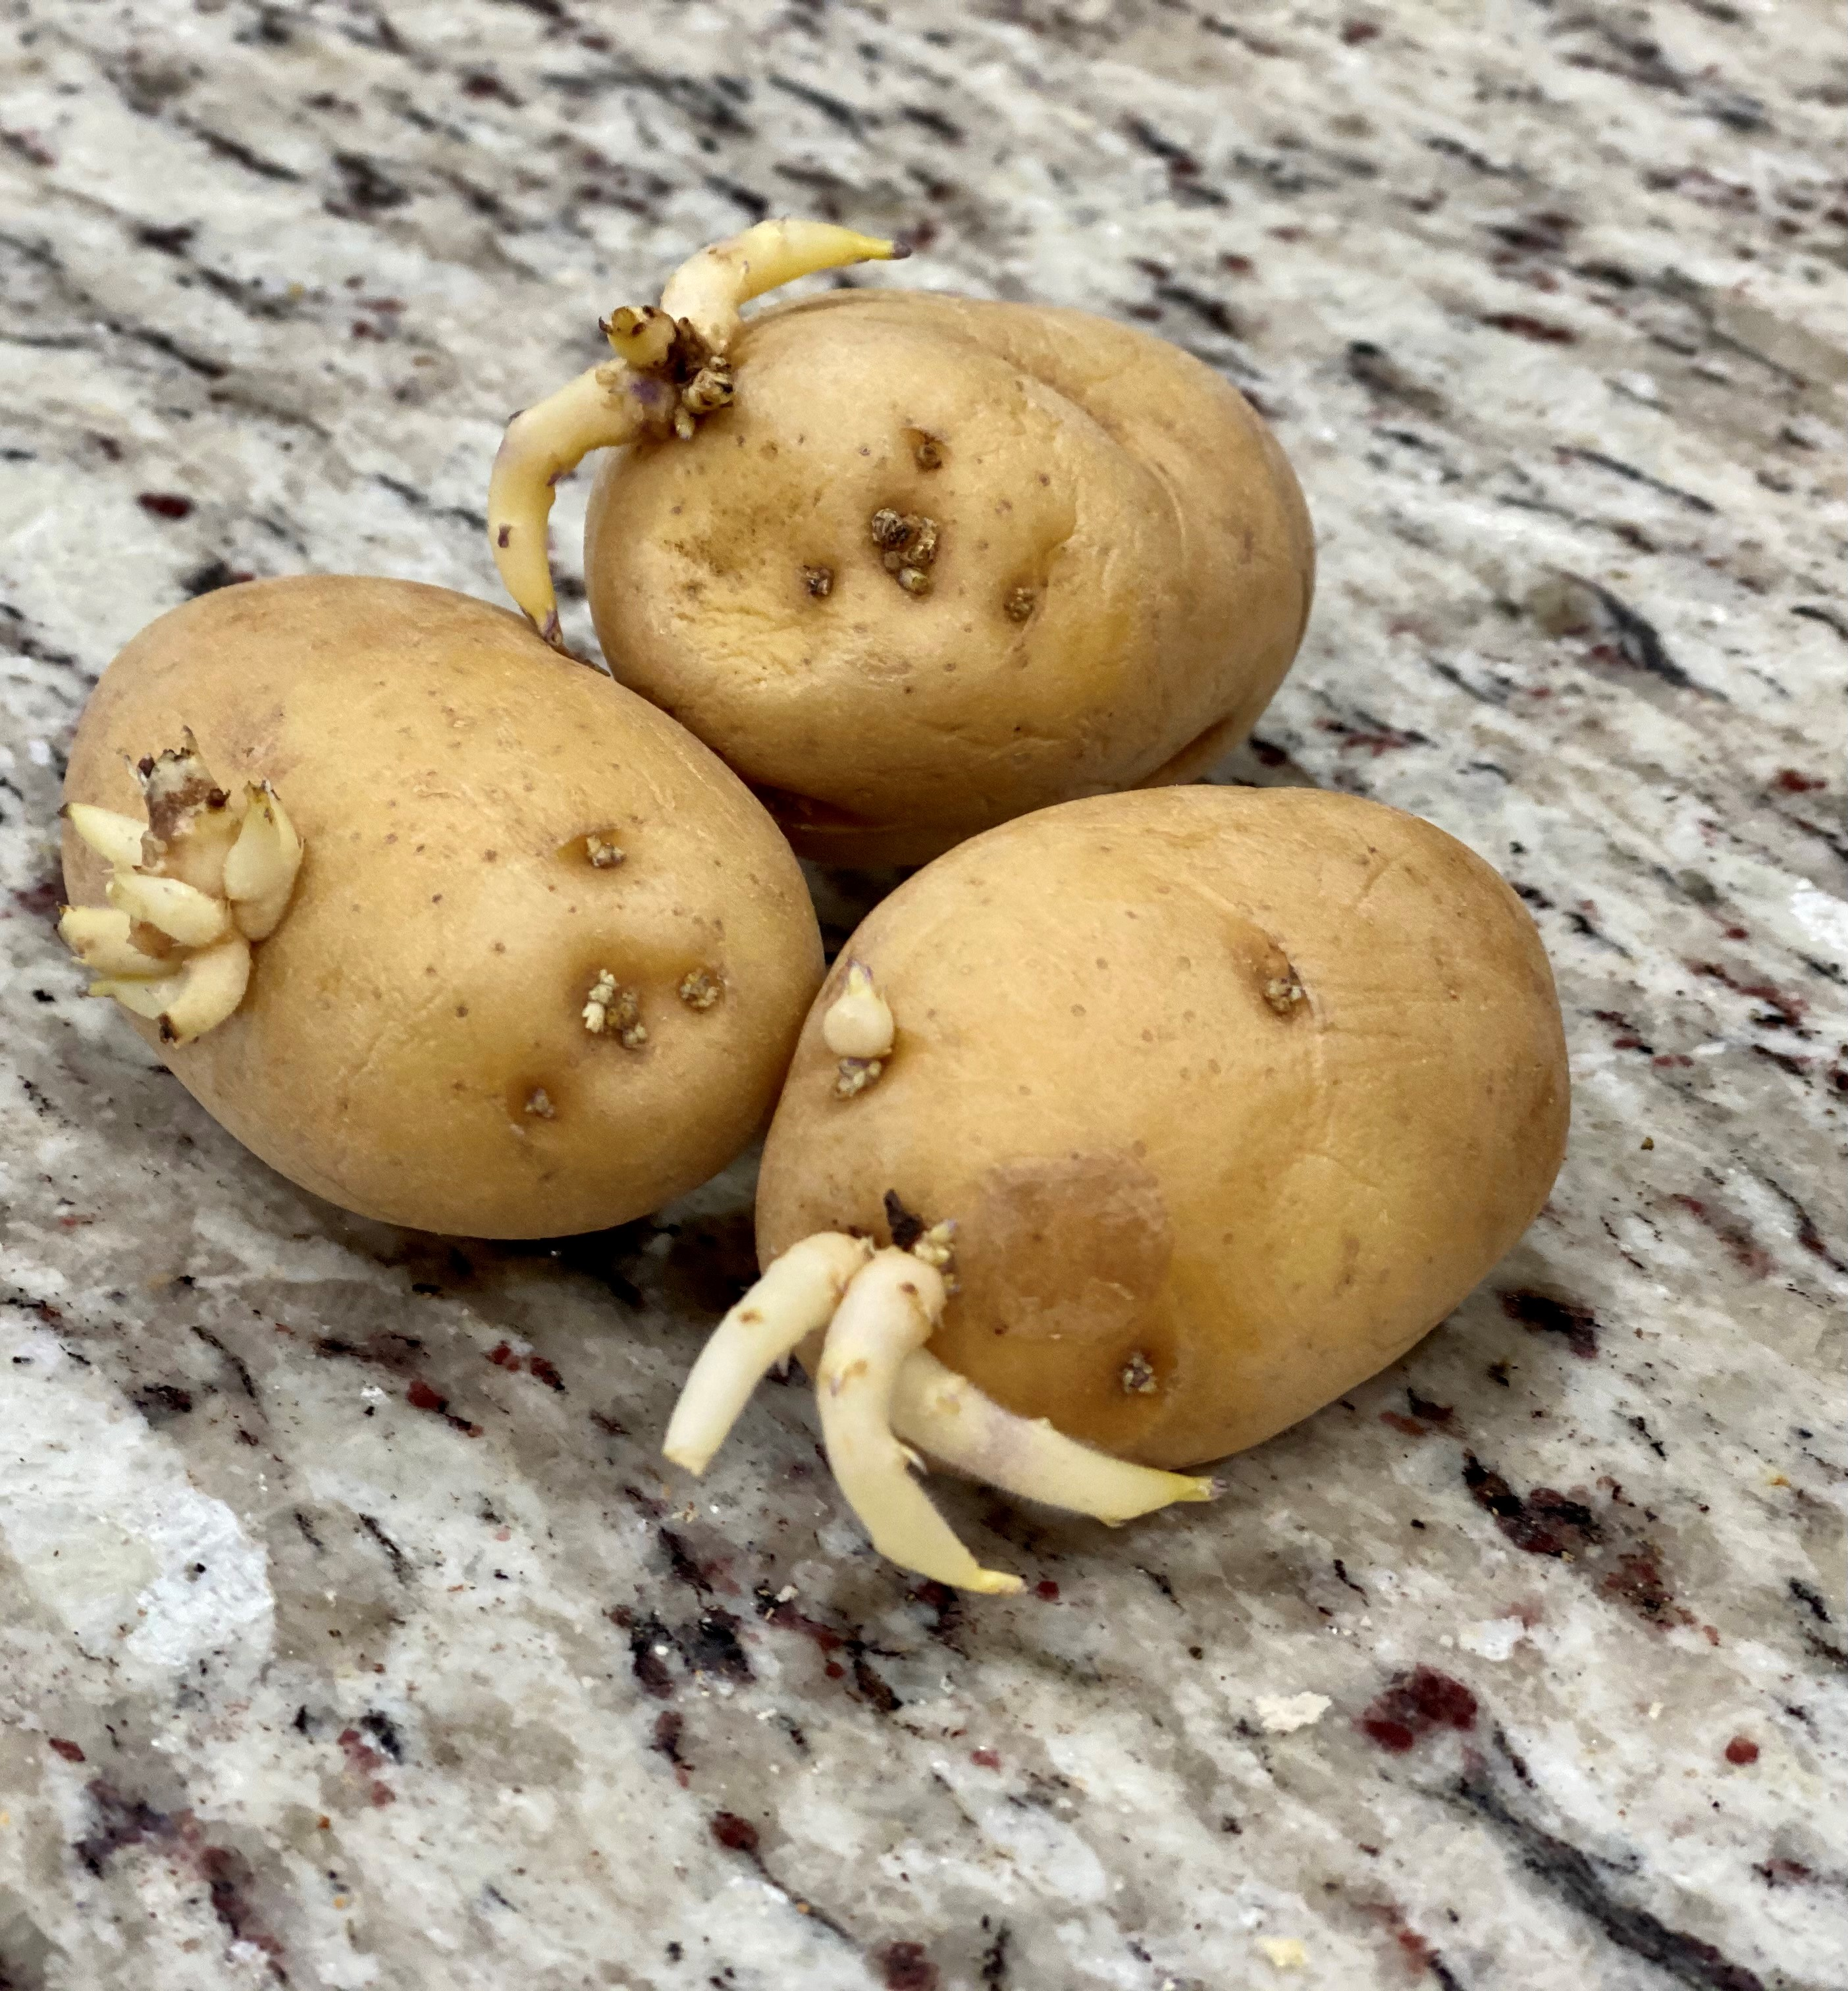 Three potatoes with sprouts.